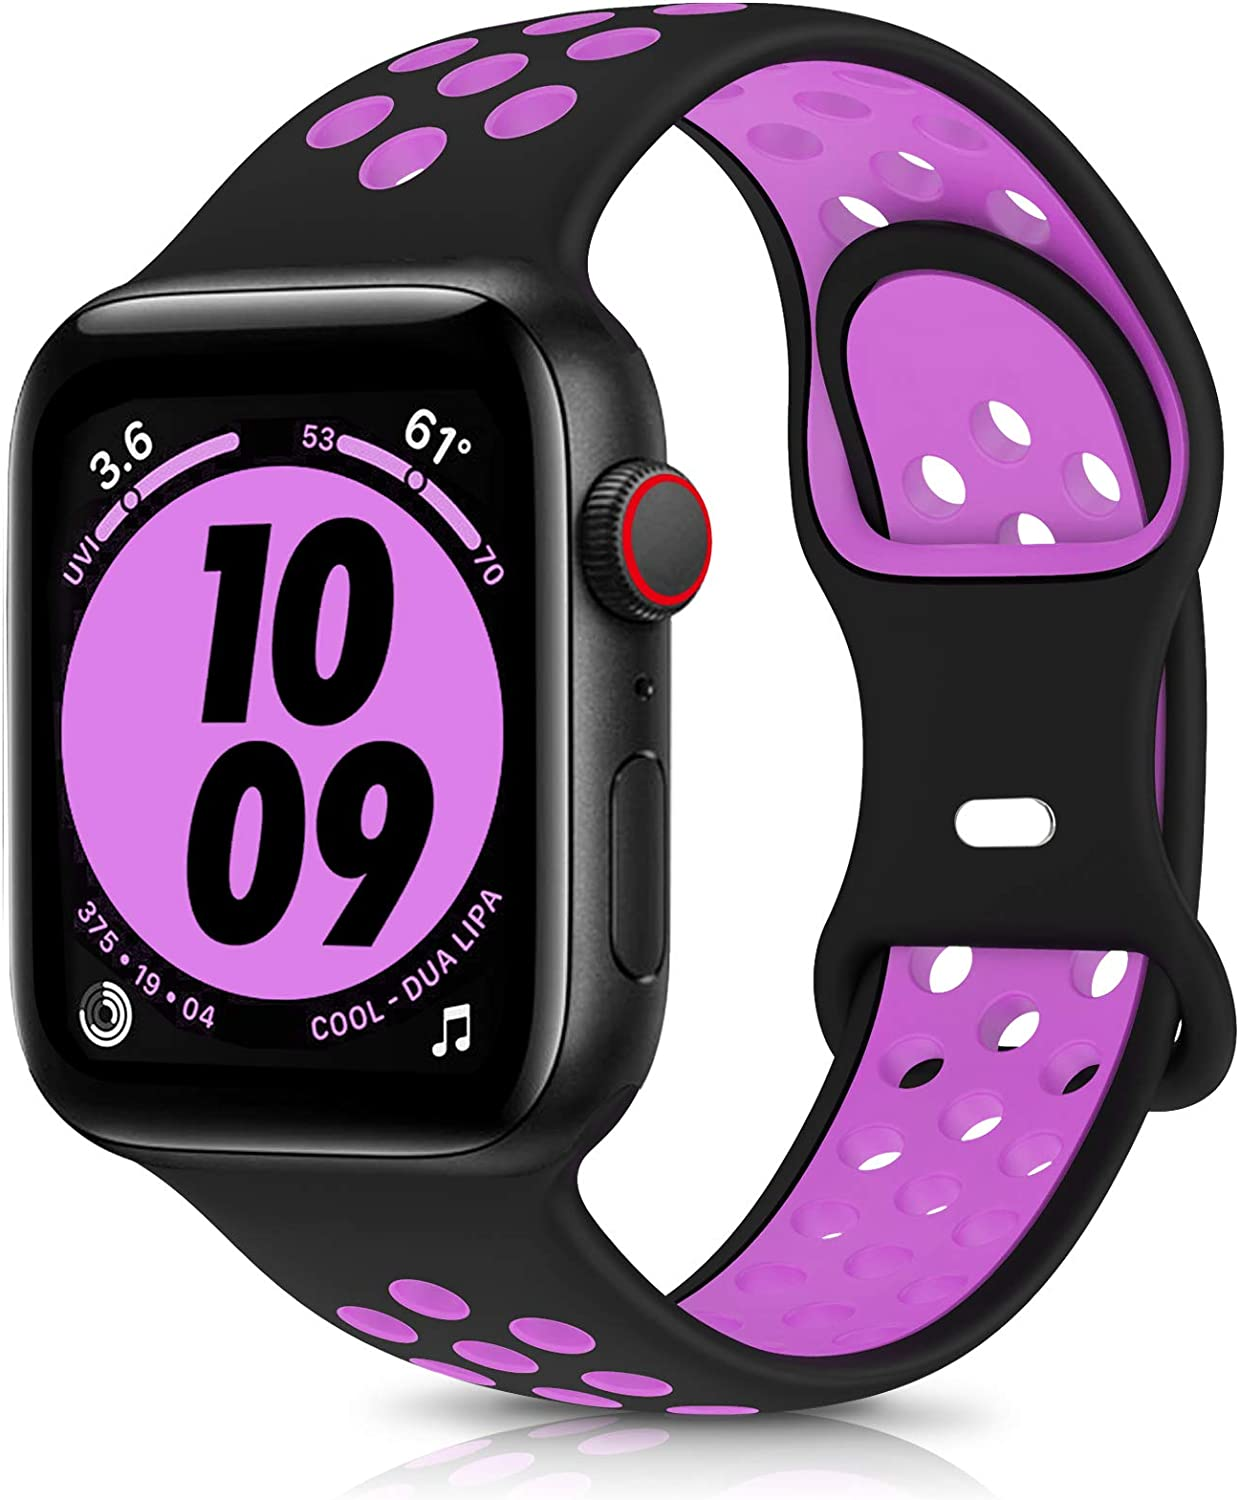 OYODSS Sport Bands Compatible with Apple Watch Band 38mm 40mm 42mm 44mm, Breathable Soft Silicone Replacement Wristband Strap Compatible with iWatch Series 6 5 4 3 2 1 SE Women Men Black&Purple